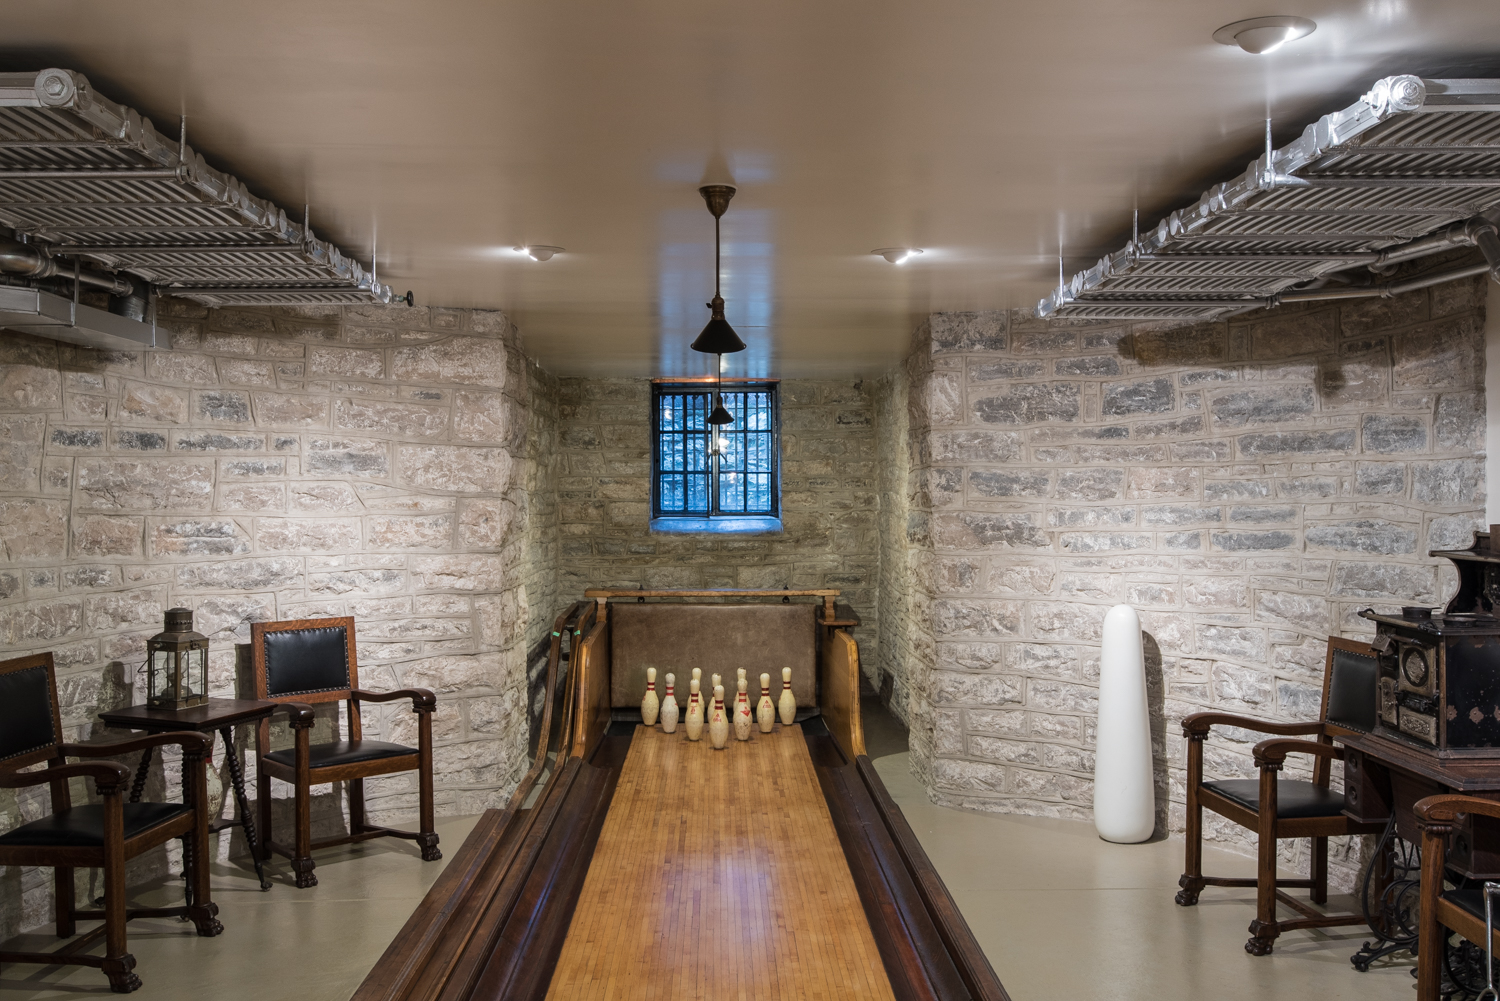 The basement bowling lane at the Magic Chef Mansion, one of the gorgeous homes on the Compton Heights/Compton Hill Home Tour (Photo by and courtesy of Michael C. Daft)